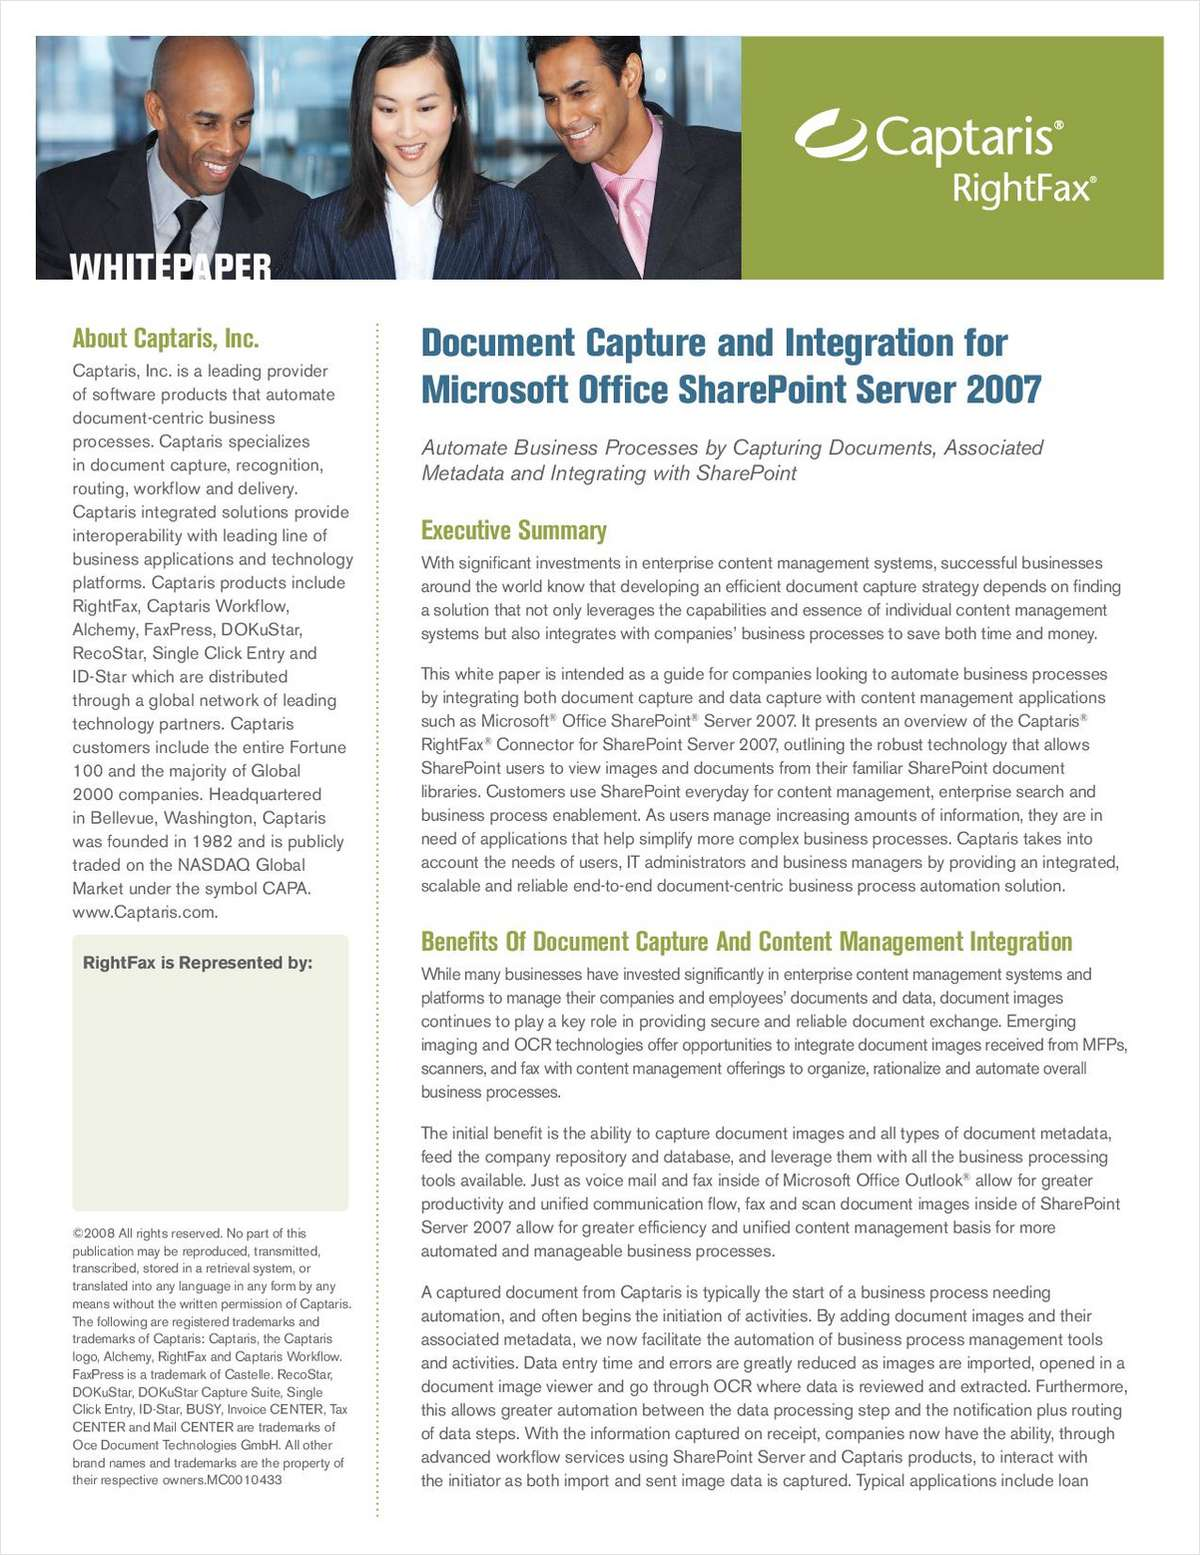 Document Capture and Integration for Microsoft Office SharePoint Server 2007